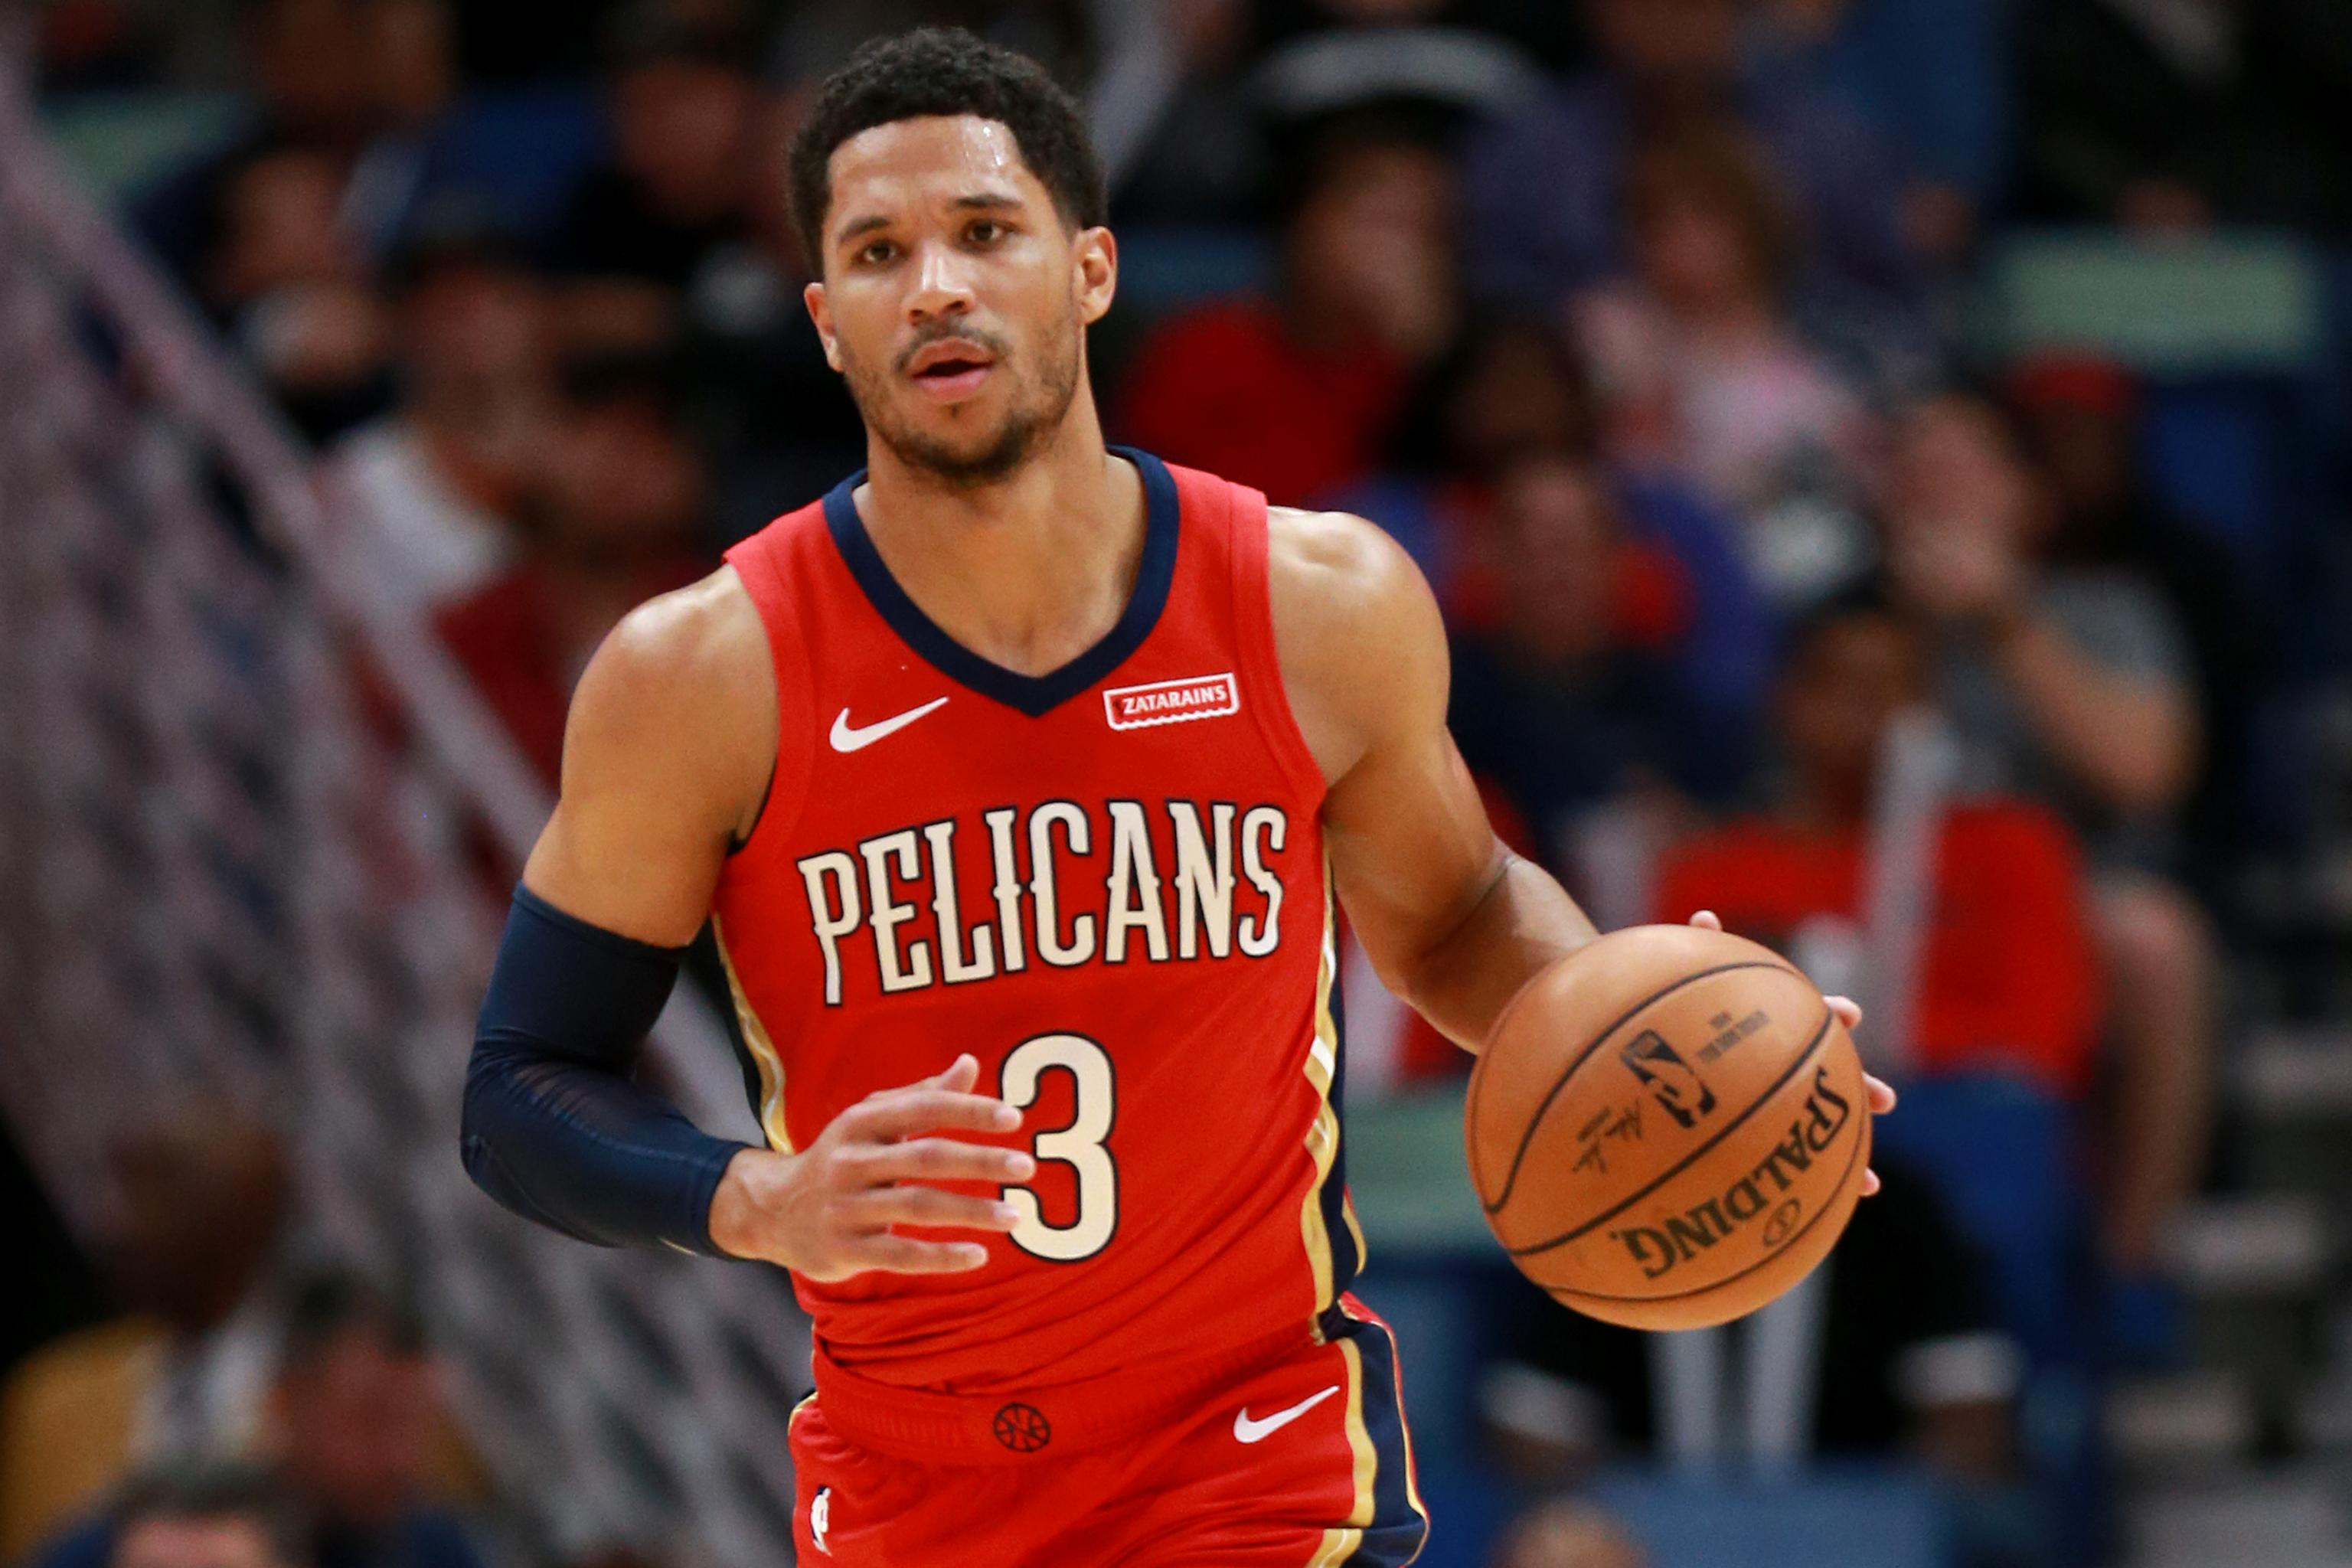 Lakers News: Pelicans' Josh Hart Called Ex-Teammates, Staff to Clear Air |  Bleacher Report | Latest News, Videos and Highlights